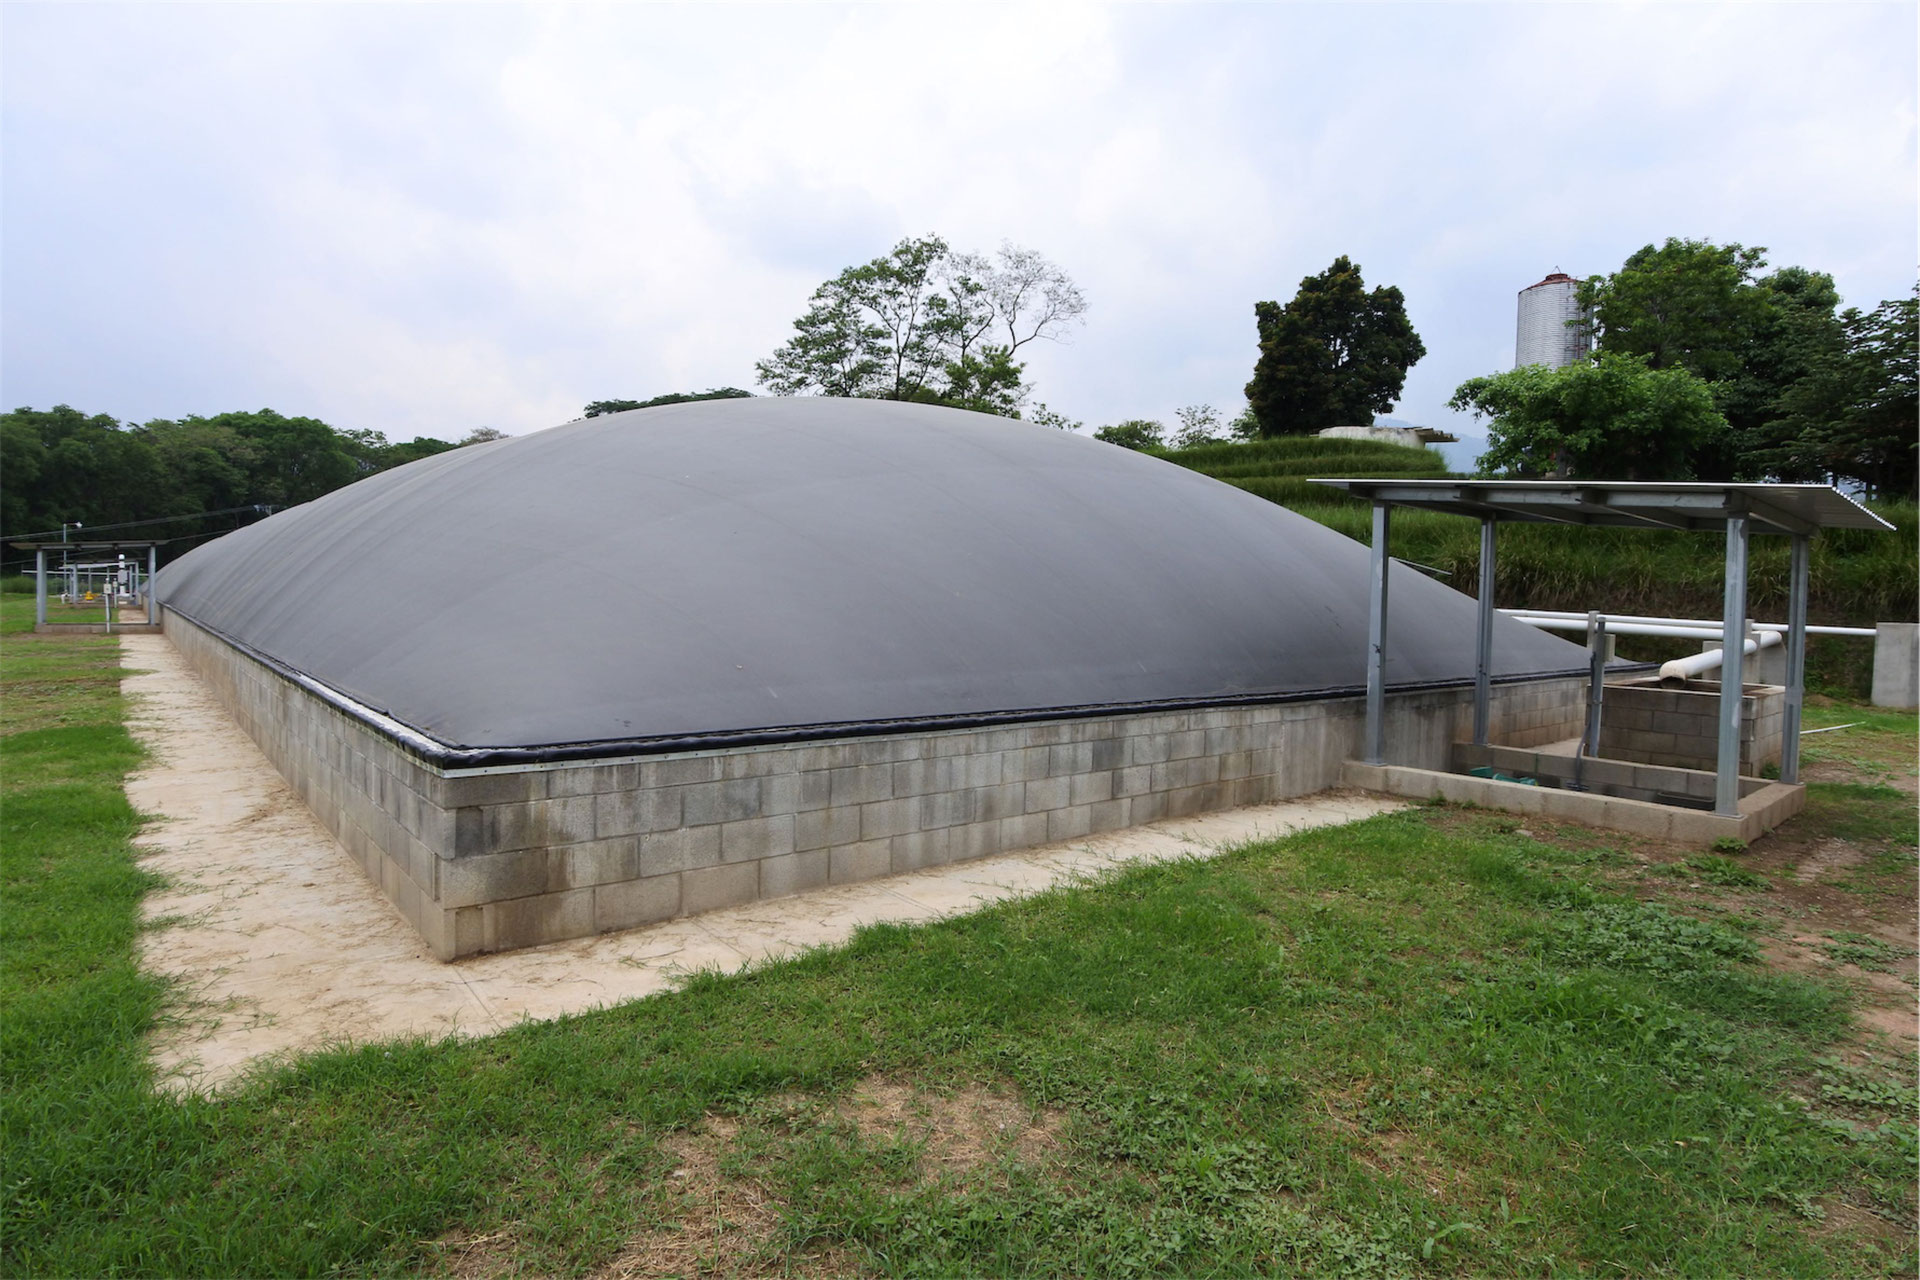 covered-lagoon-digester Biogas Digester Design For Home on home biogas generator diagram, home biogas for use, home biogas plant, home biogas generator blueprints, home biogas generator plans, home biogas system,